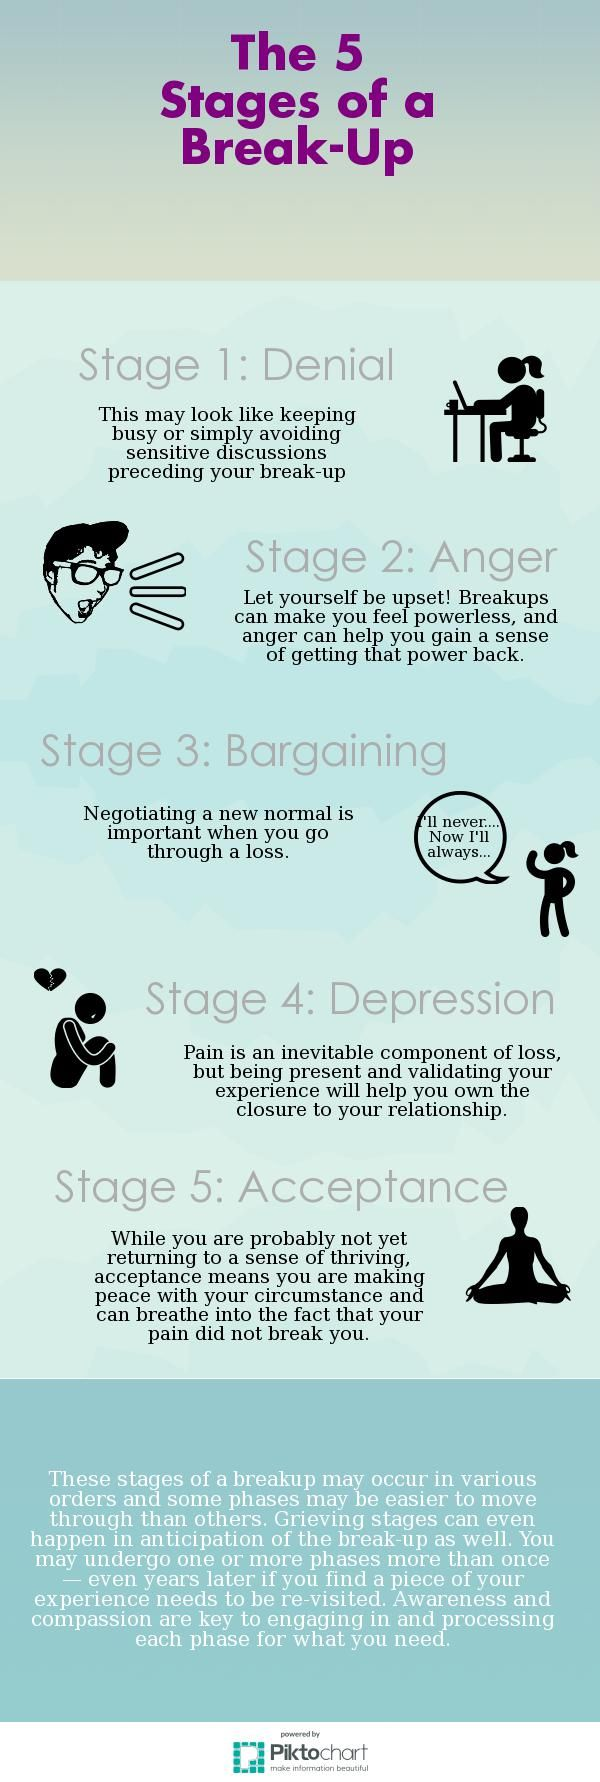 5 Stages of a Breakup | @Piktochart Infographic